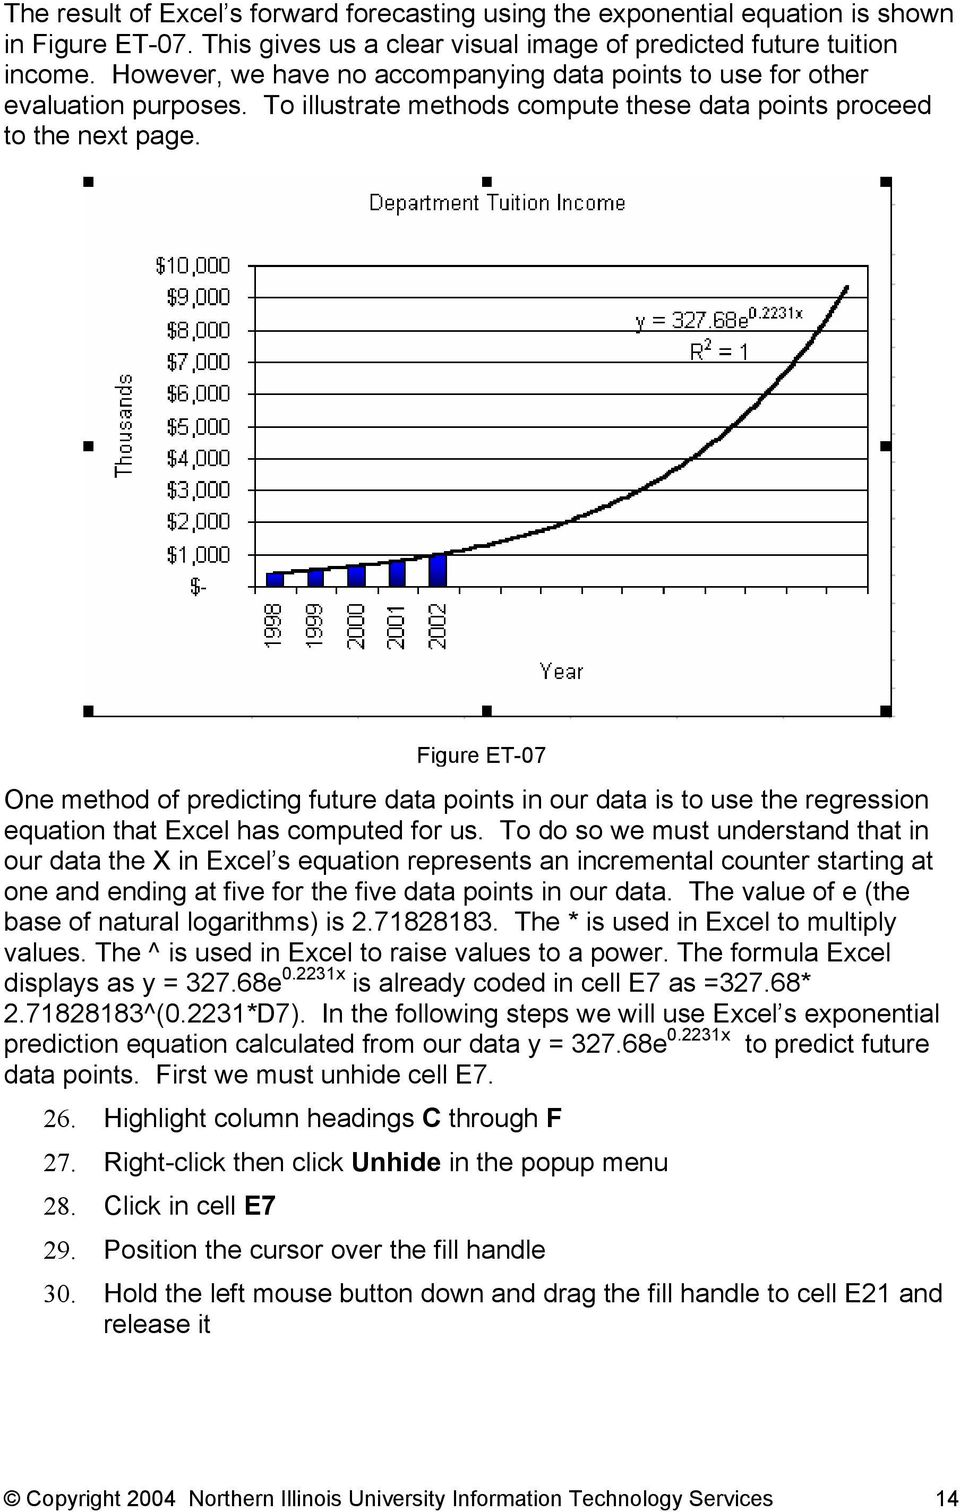 Figure ET-07 One method of predicting future data points in our data is to use the regression equation that Excel has computed for us.